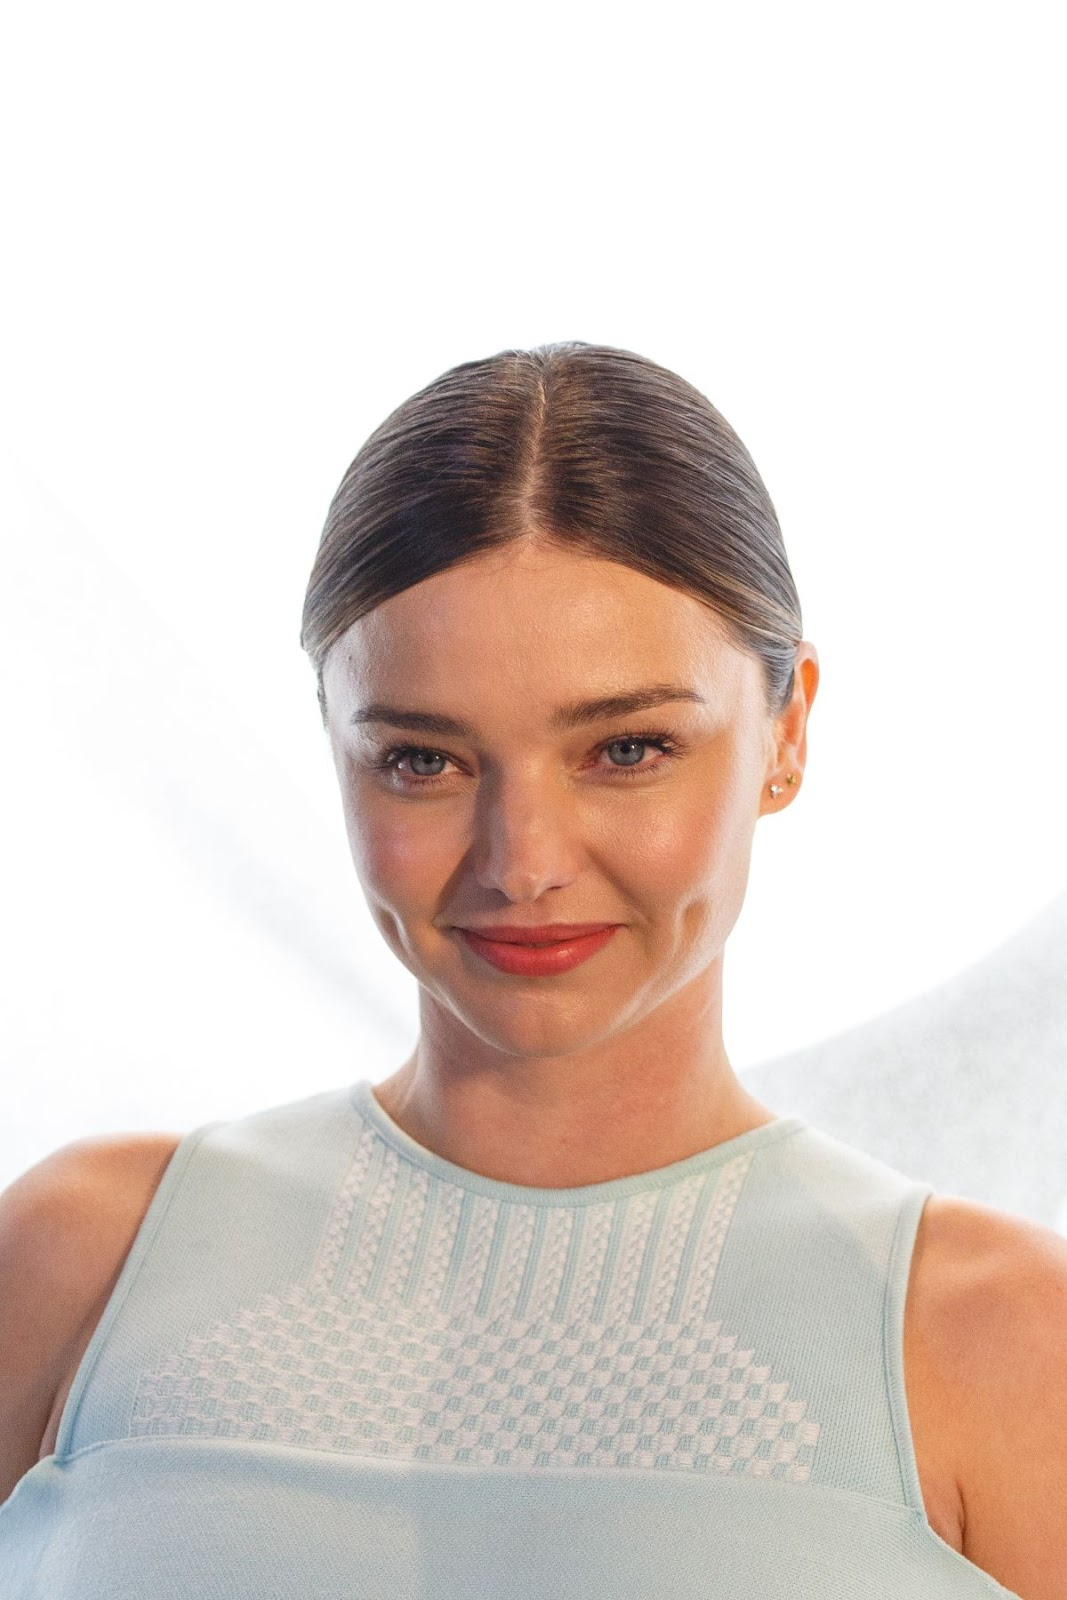 Full HD Photos & Wallpapers - Miranda Kerr promotes Kora Organics Skincare Products in Sydney